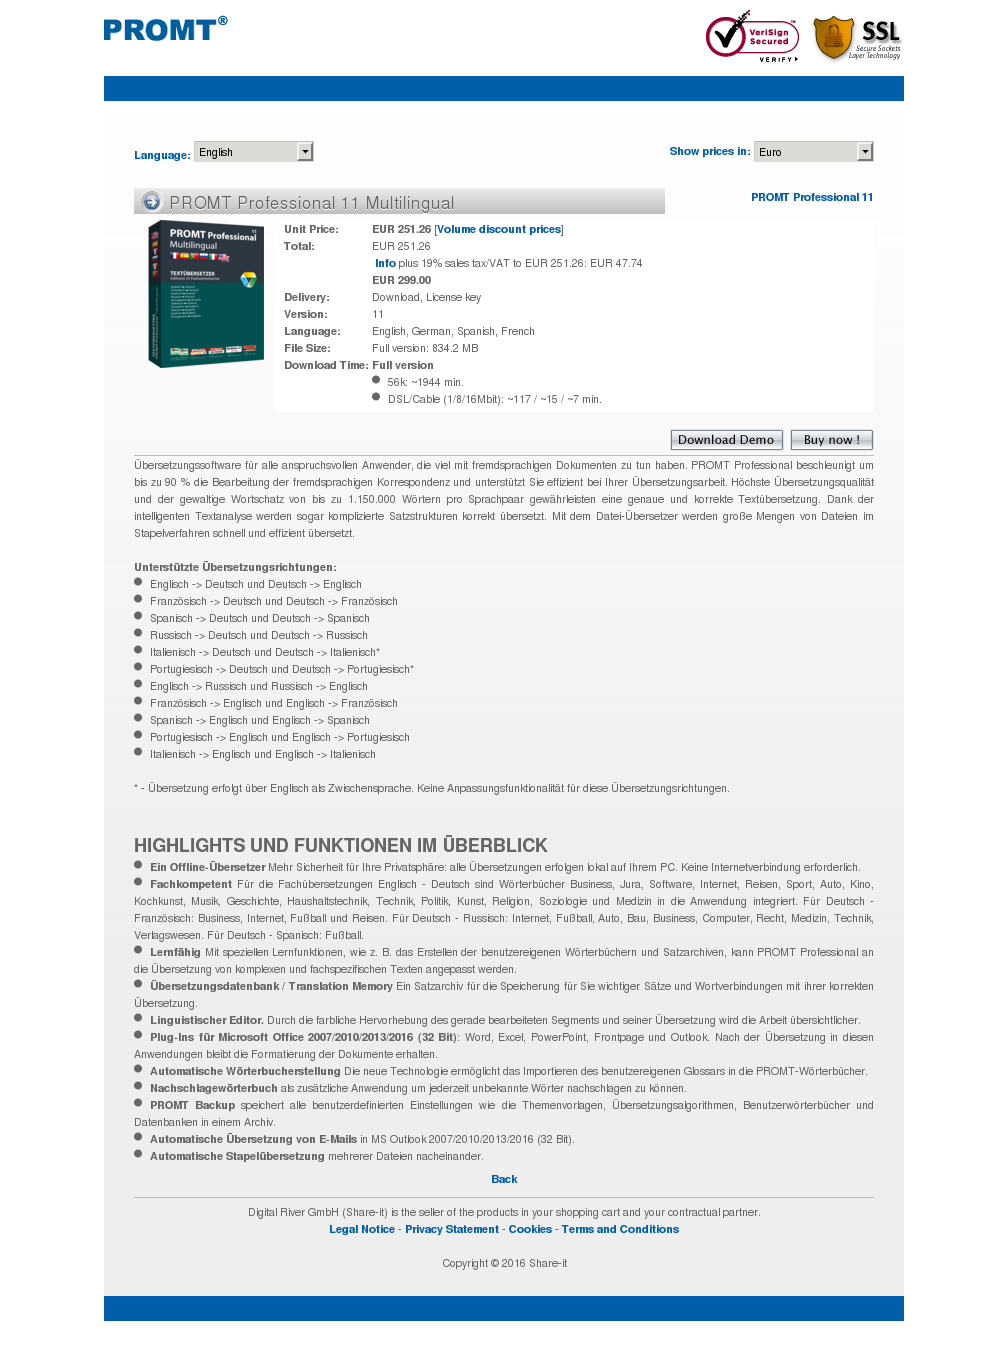 Promt Professional Multilingual Howto